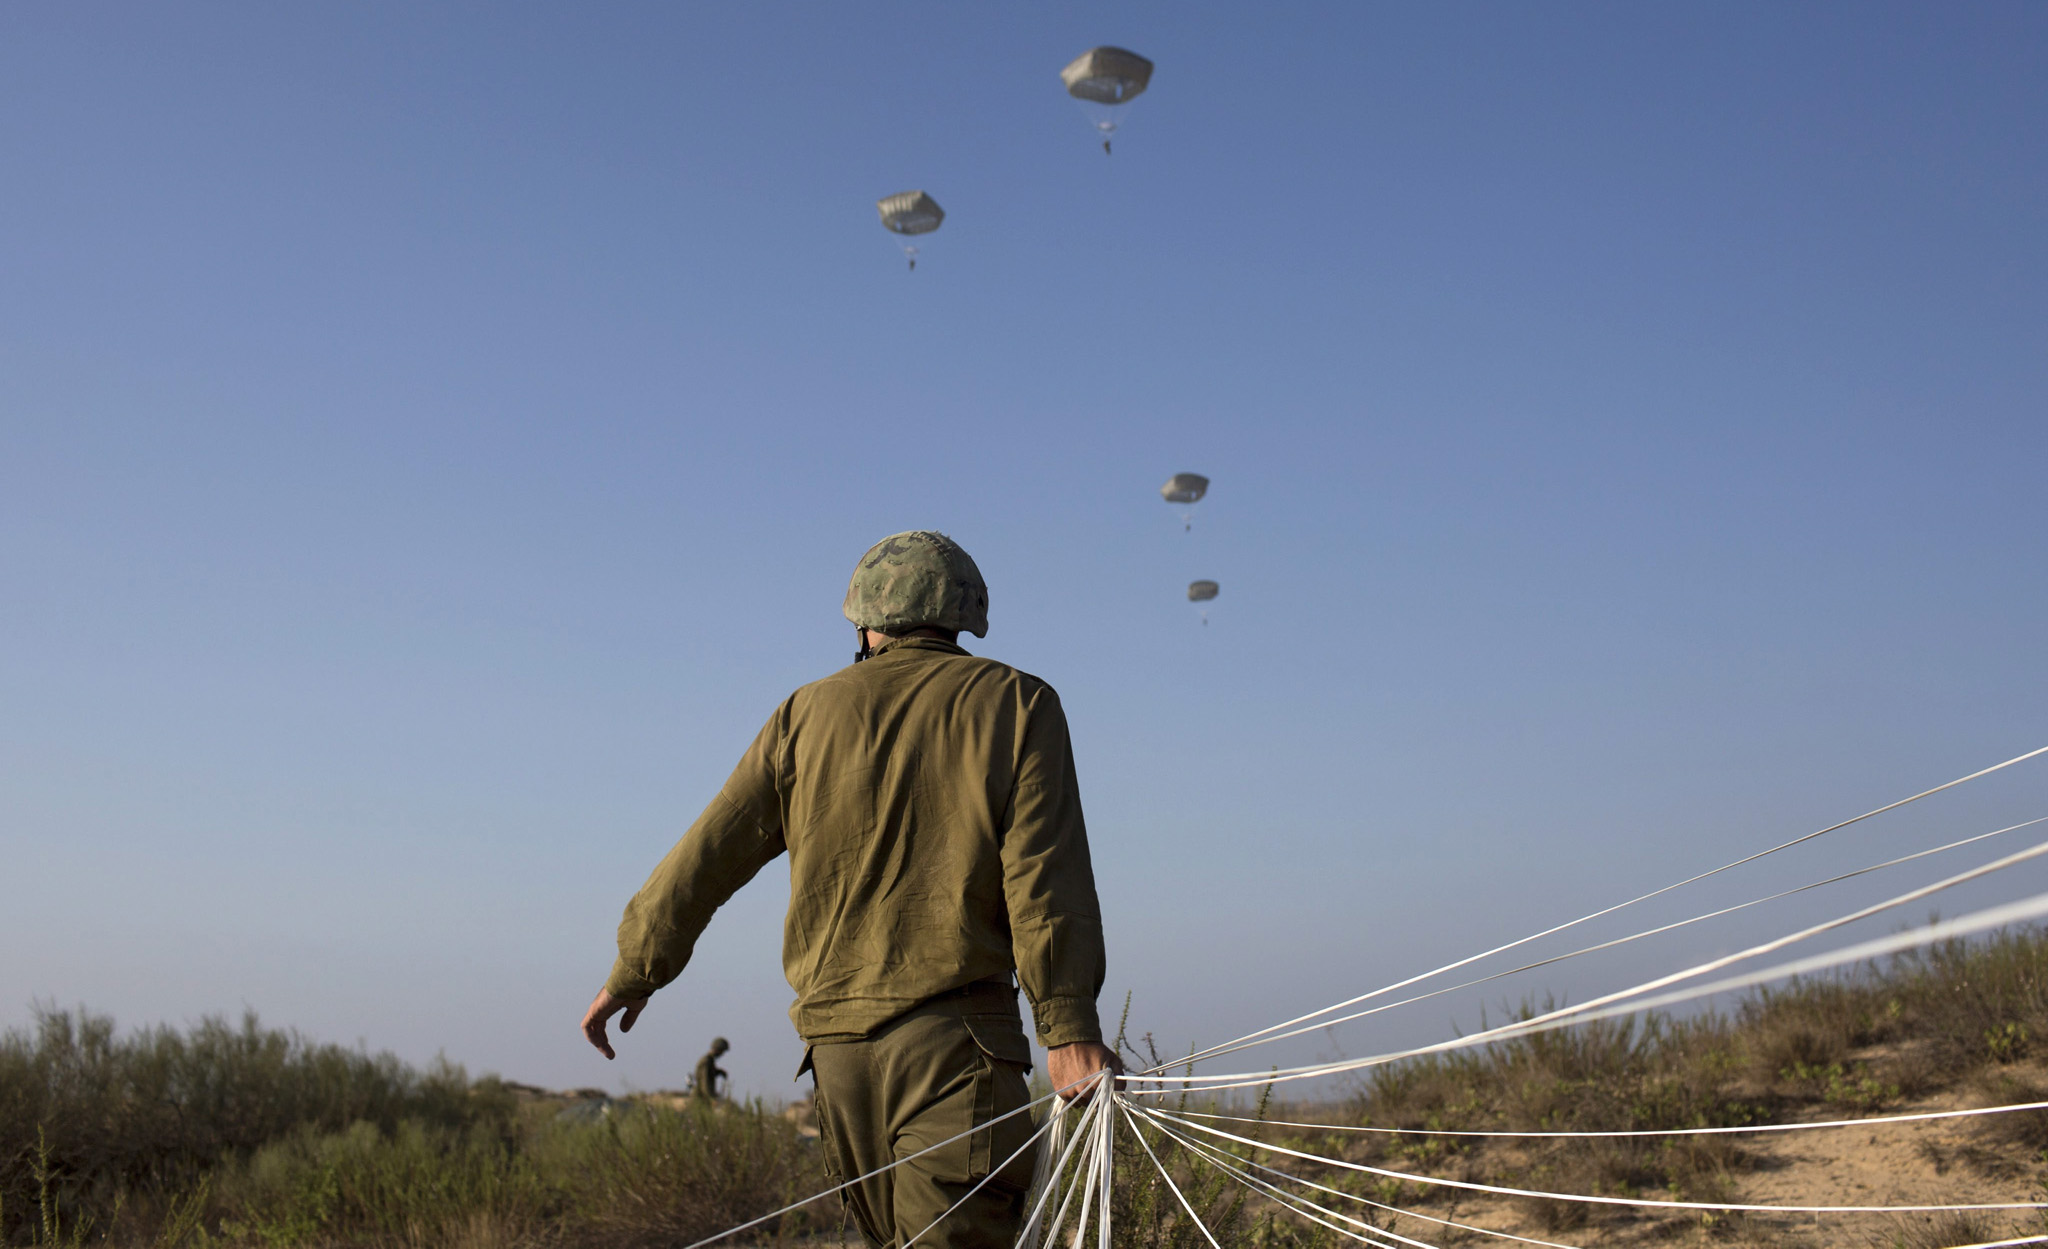 epa05408287 Israeli army paratroopers take part in a training jump in full battle gear over the Palmachim military base near Tel Aviv, Israel, 05 July 2016. Although the Paratroopers Brigade has had only one operational combat parachute drop ever, during the 1956 Sinai War, volunteers accepted into the elite unit undergo operational training jumps with all the equipment needed for battle.  EPA/ABIR SULTAN